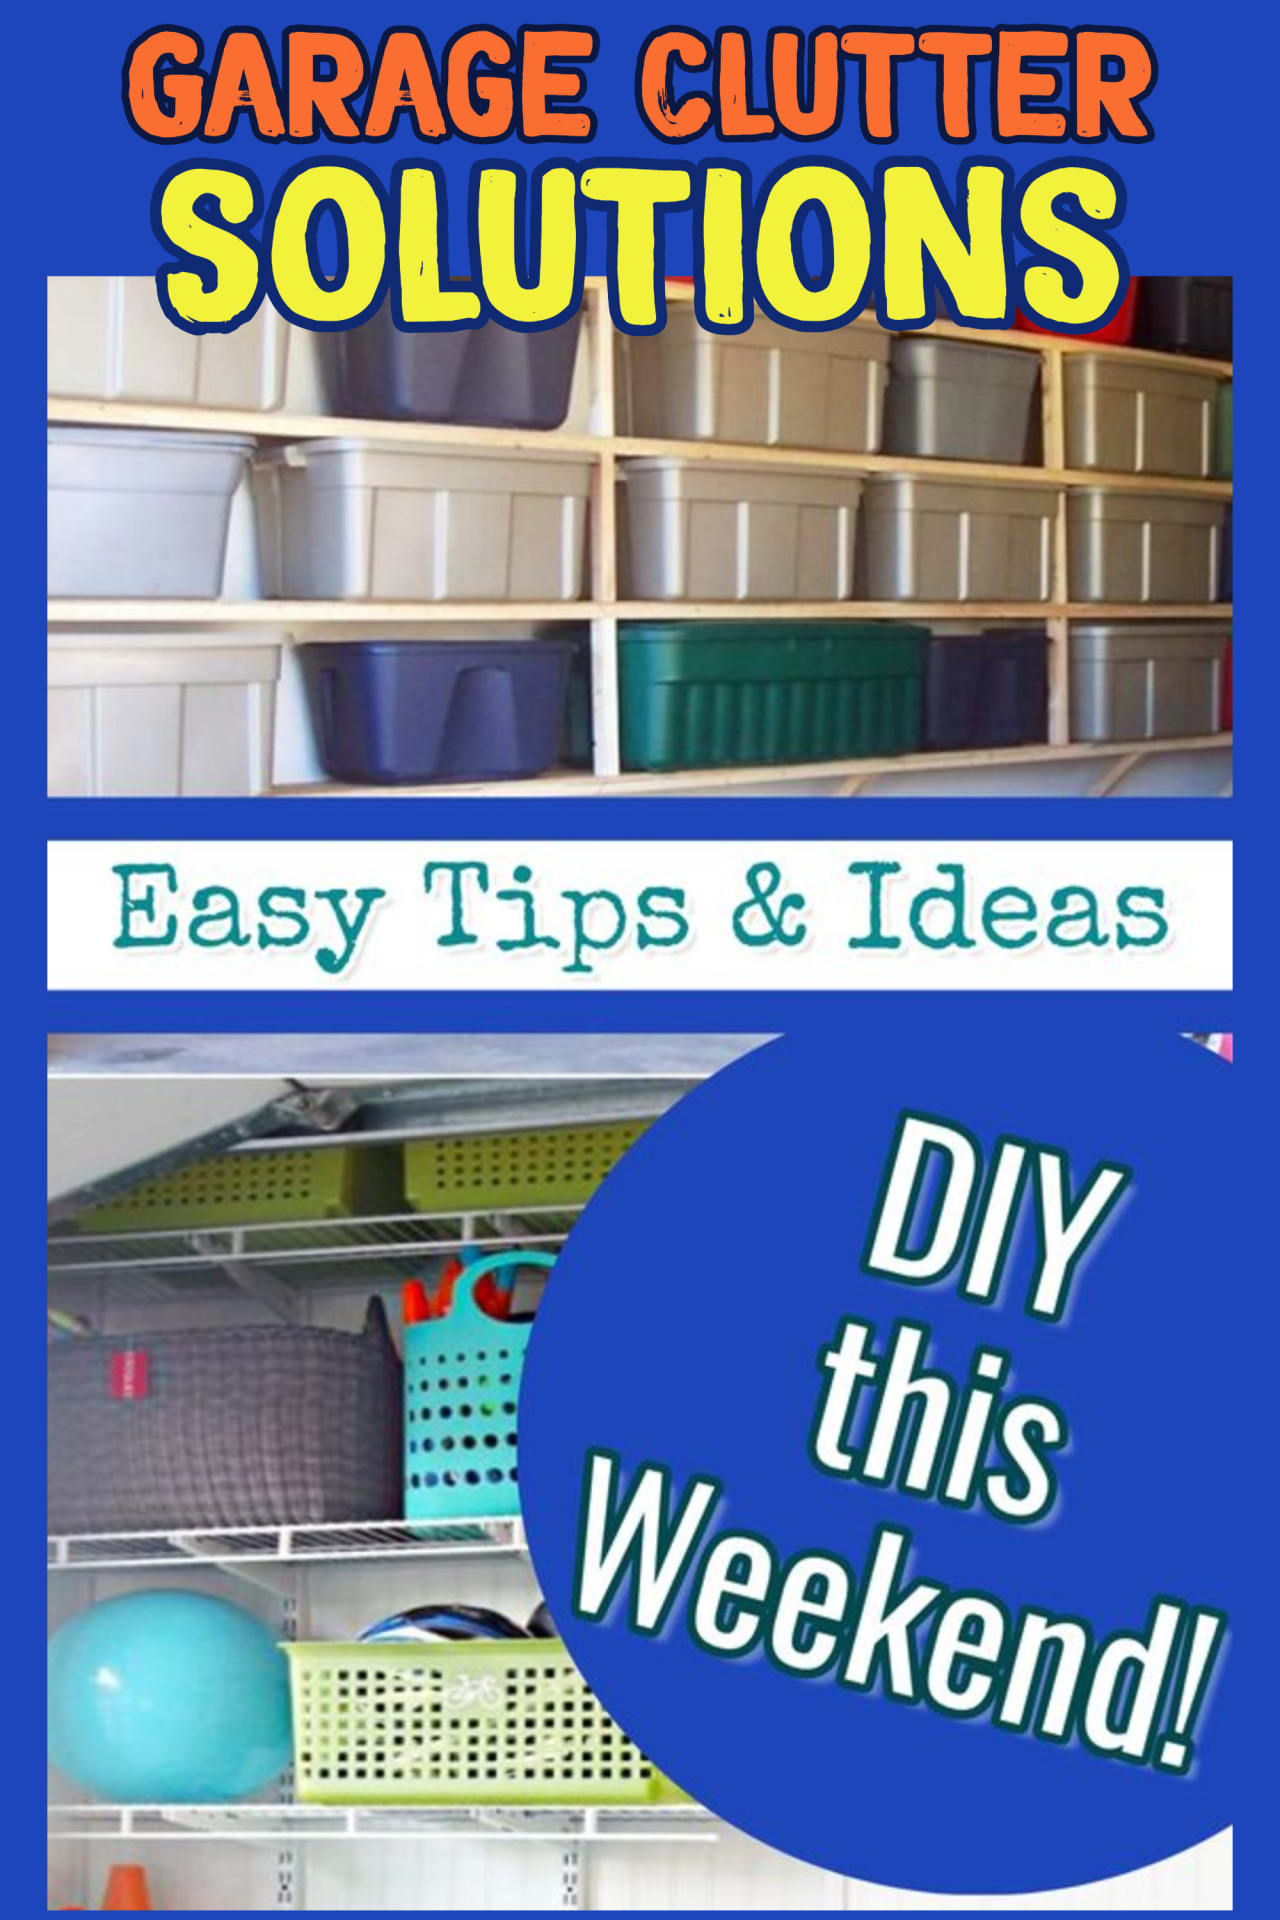 Garage Clutter Storage Solutions!  Ready to declutter and organize your garage?  These garage storage and organization hacks are some of the best organizing tips I've found.  Cheap and EASY ways to organize your garage fast!